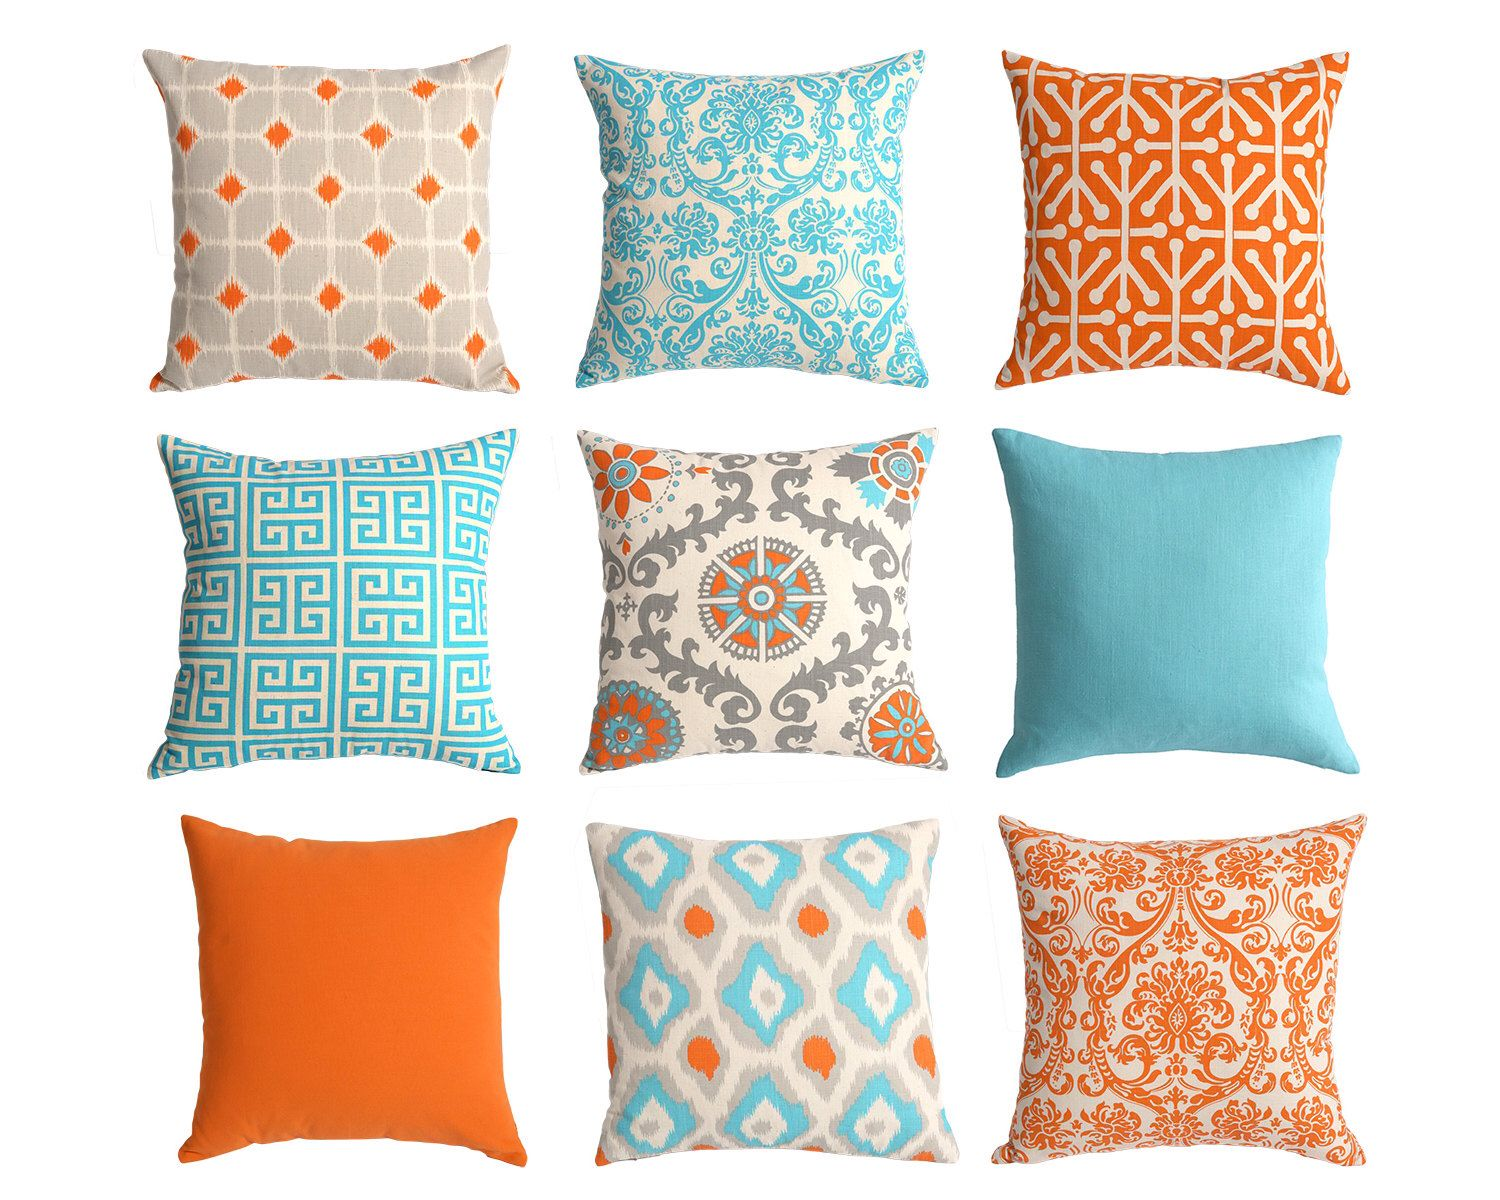 One Orange and Blue Euro sham 24x24 26x26 Inch Floor Pillow or ...